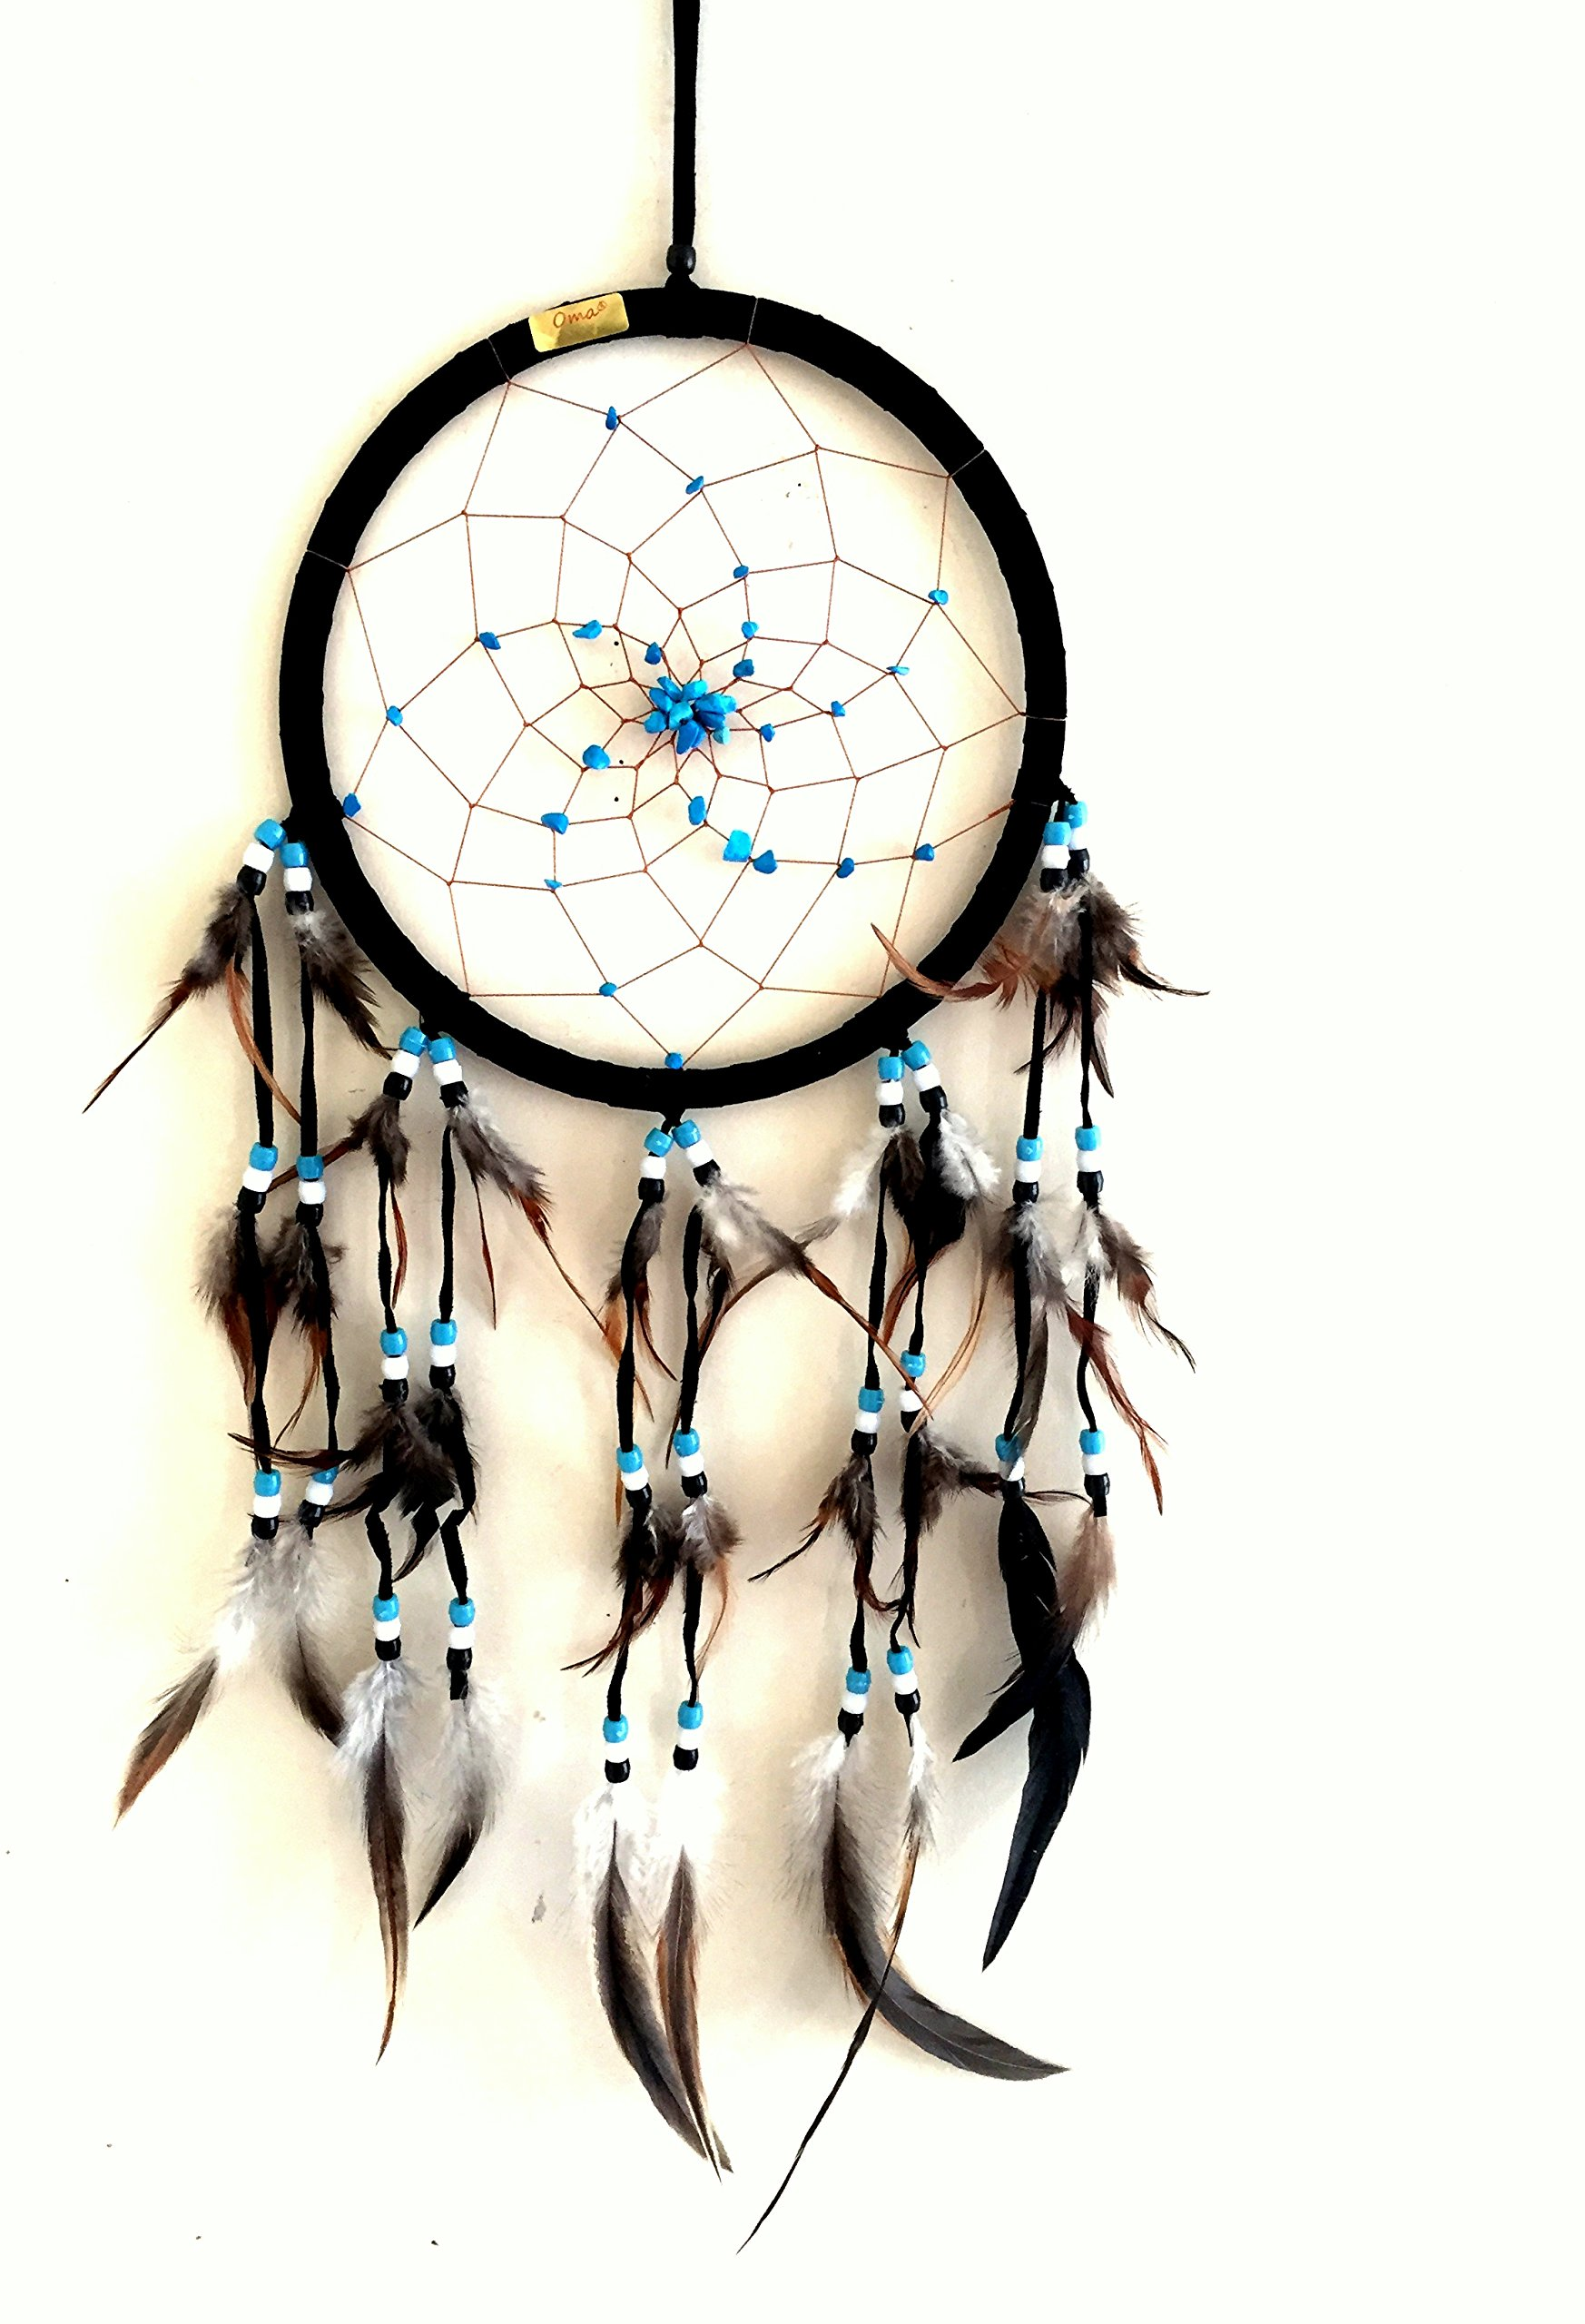 Dream Catcher DreamCatcher - BLACK SUEDE WITH TURQUOISE STONE - Handmade, LARGE SIZE - 28'' Long x 9'' Diameter - OMA BRAND (Black)